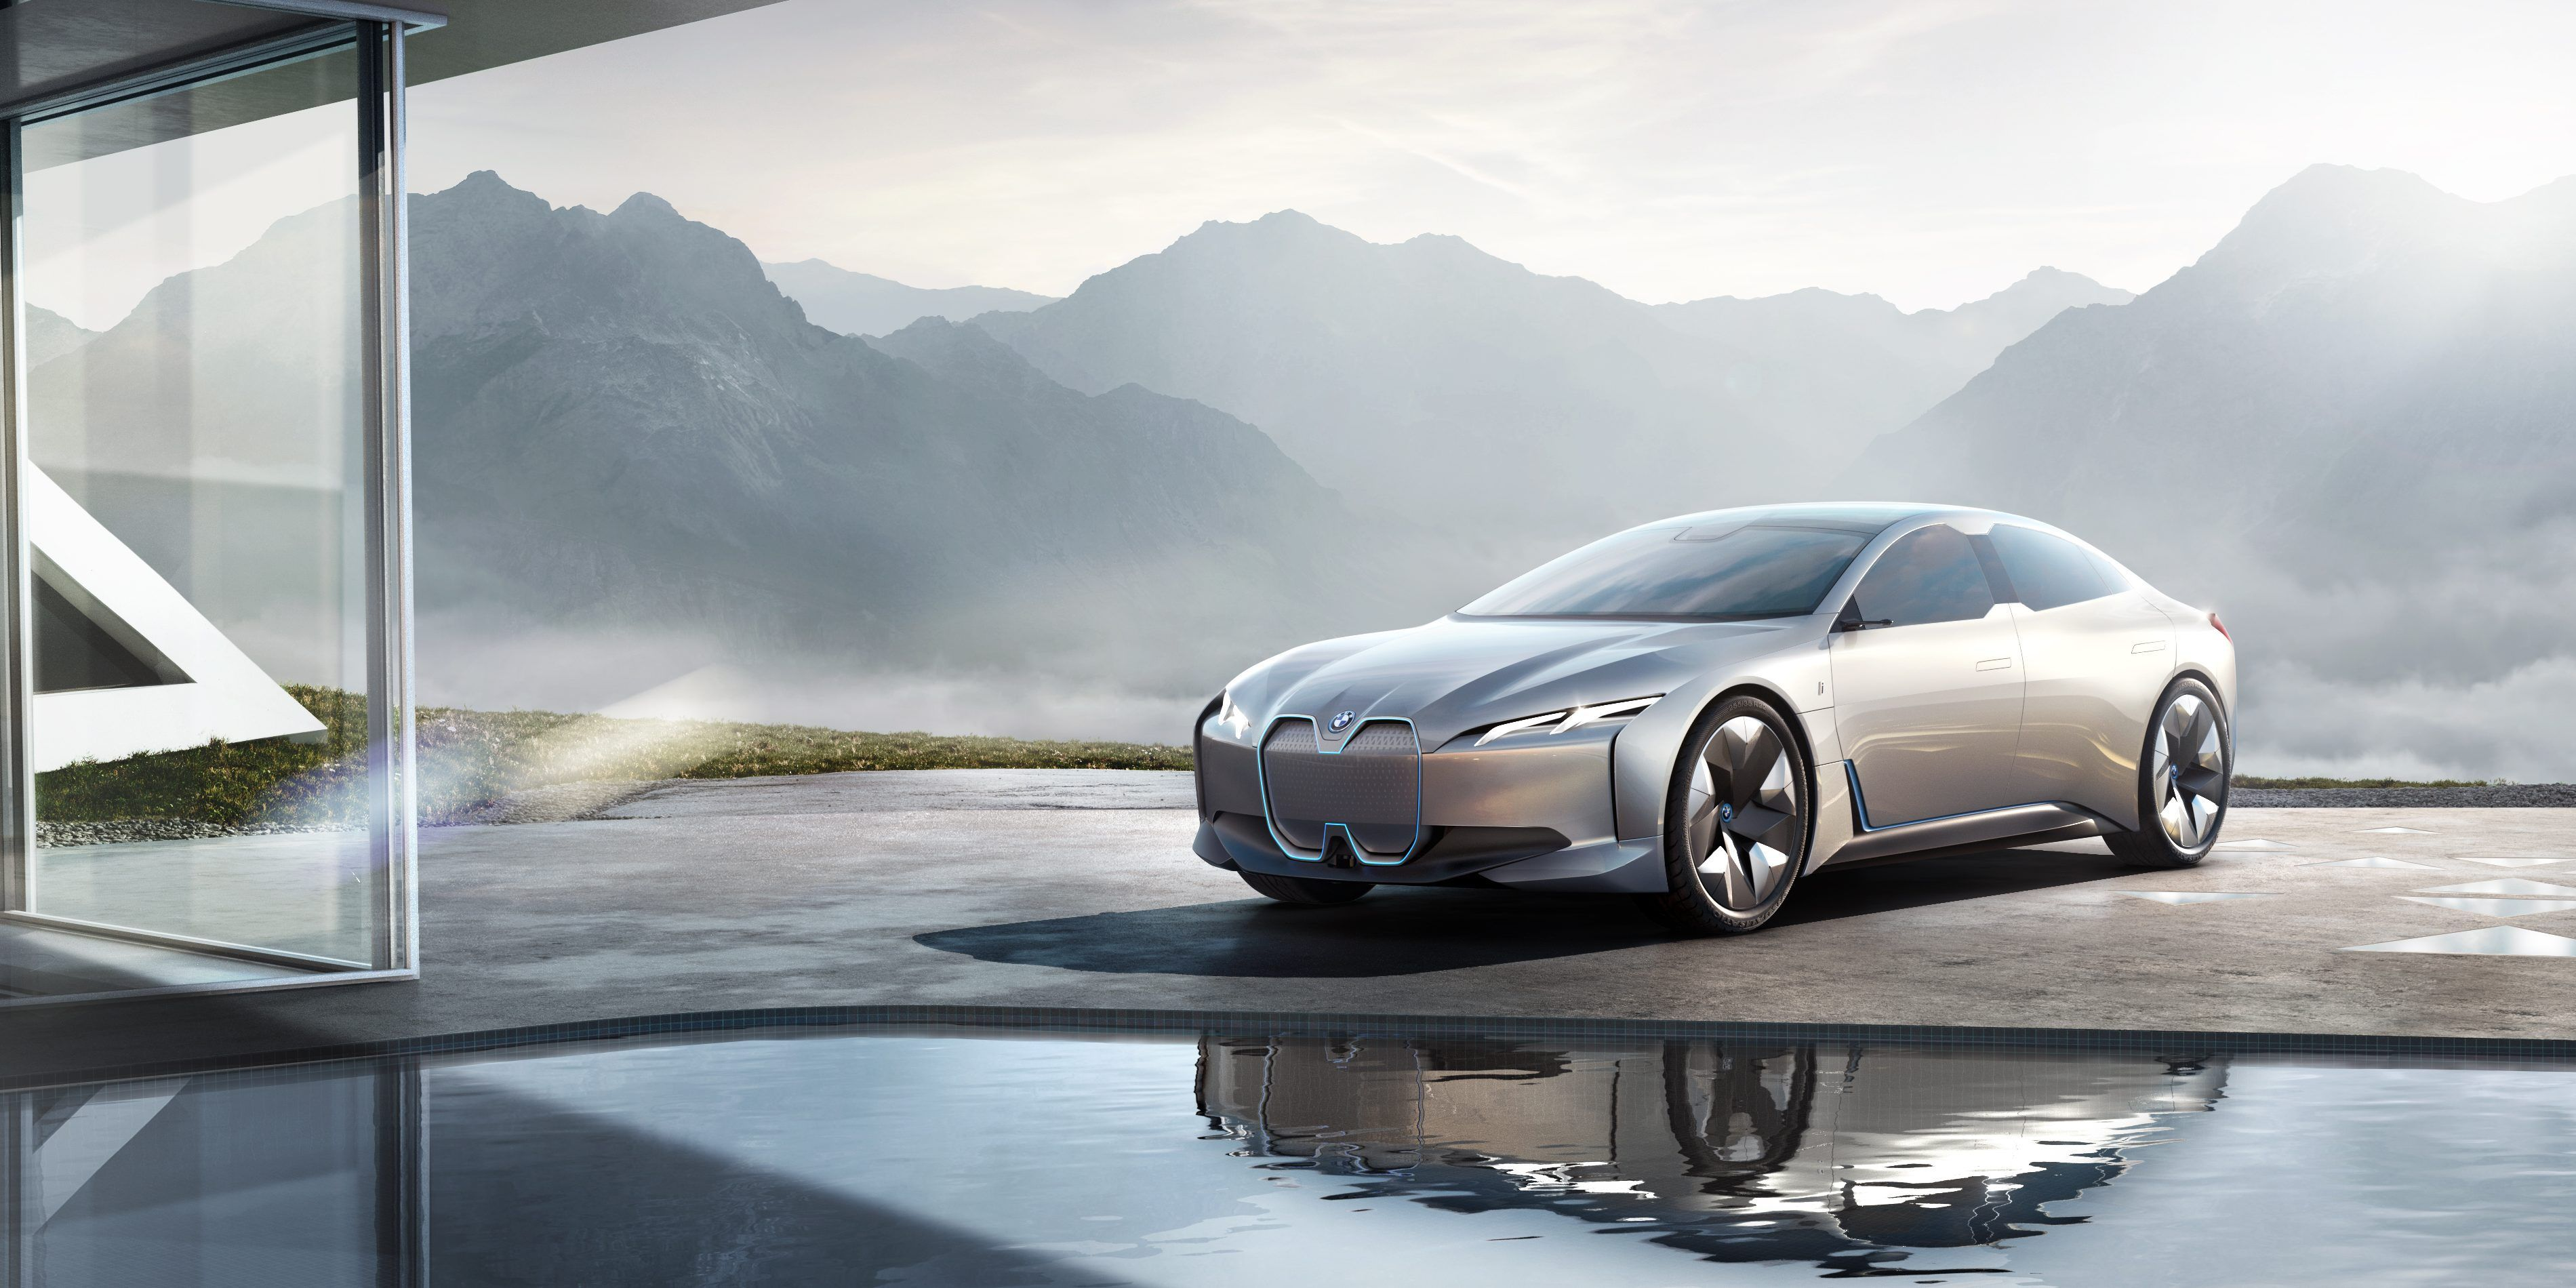 Bmw Confirms New Electric I4 Sedan Coming To Production Based On